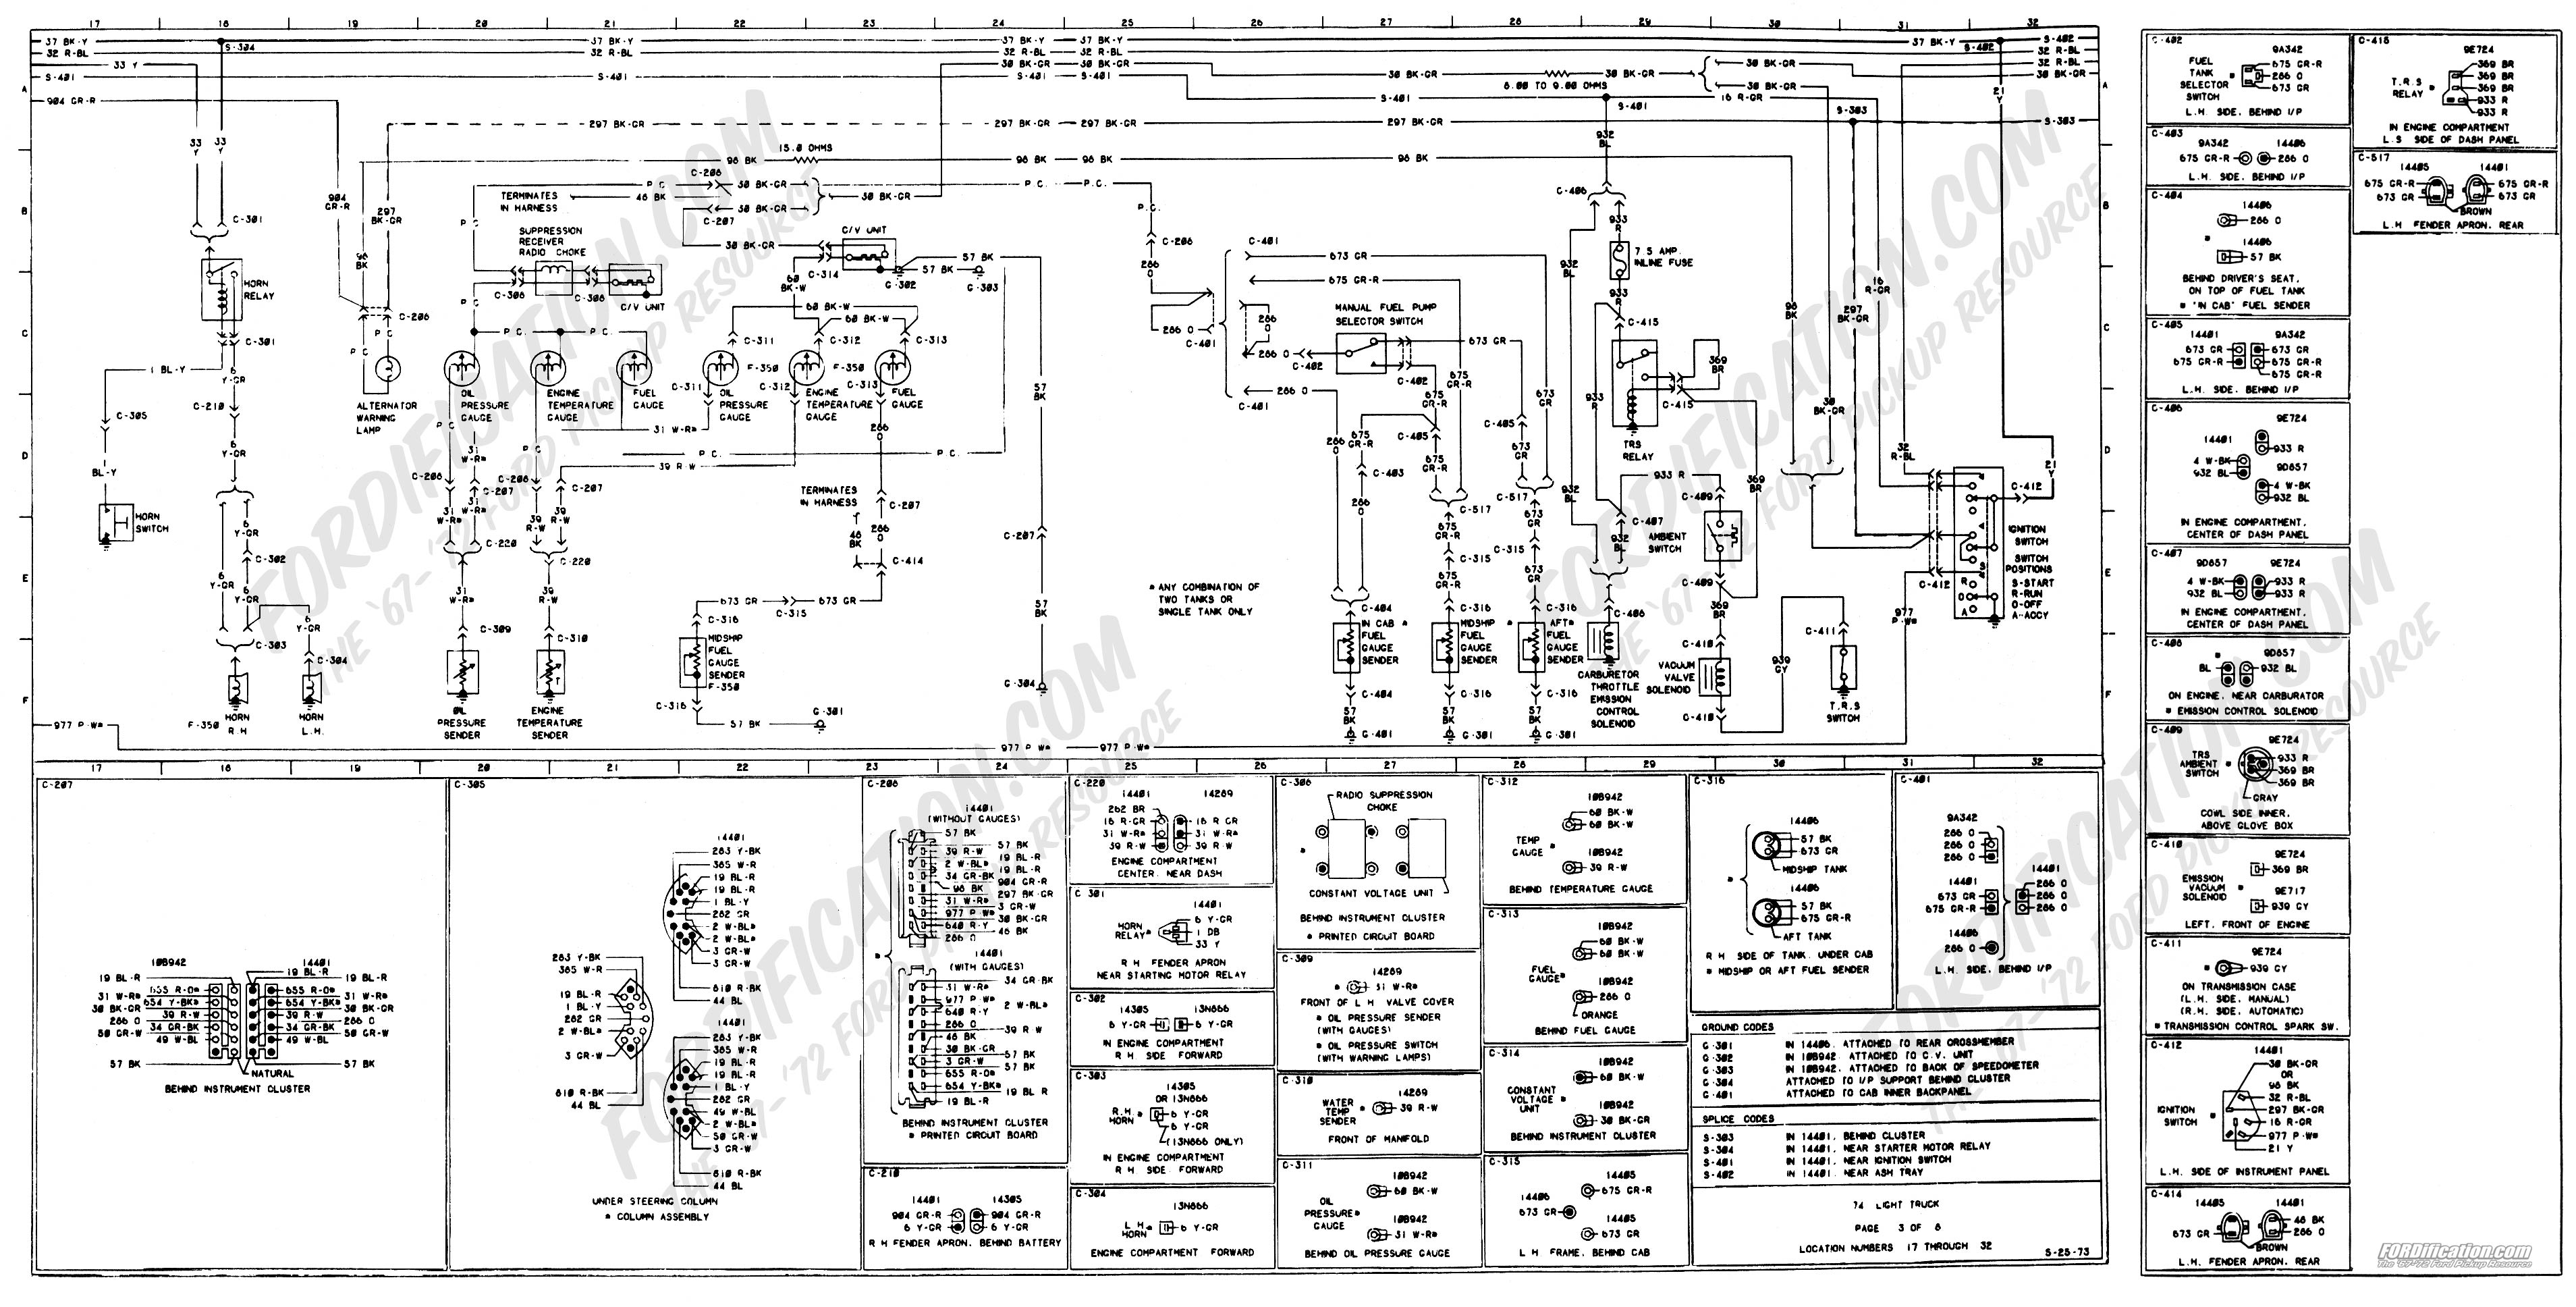 Alternator In 99 F150 Fuse Box Wiring Library Ford Diagram 2006 Truck Block And Schematic Diagrams U2022 Rh Lazysupply Co Find 2004